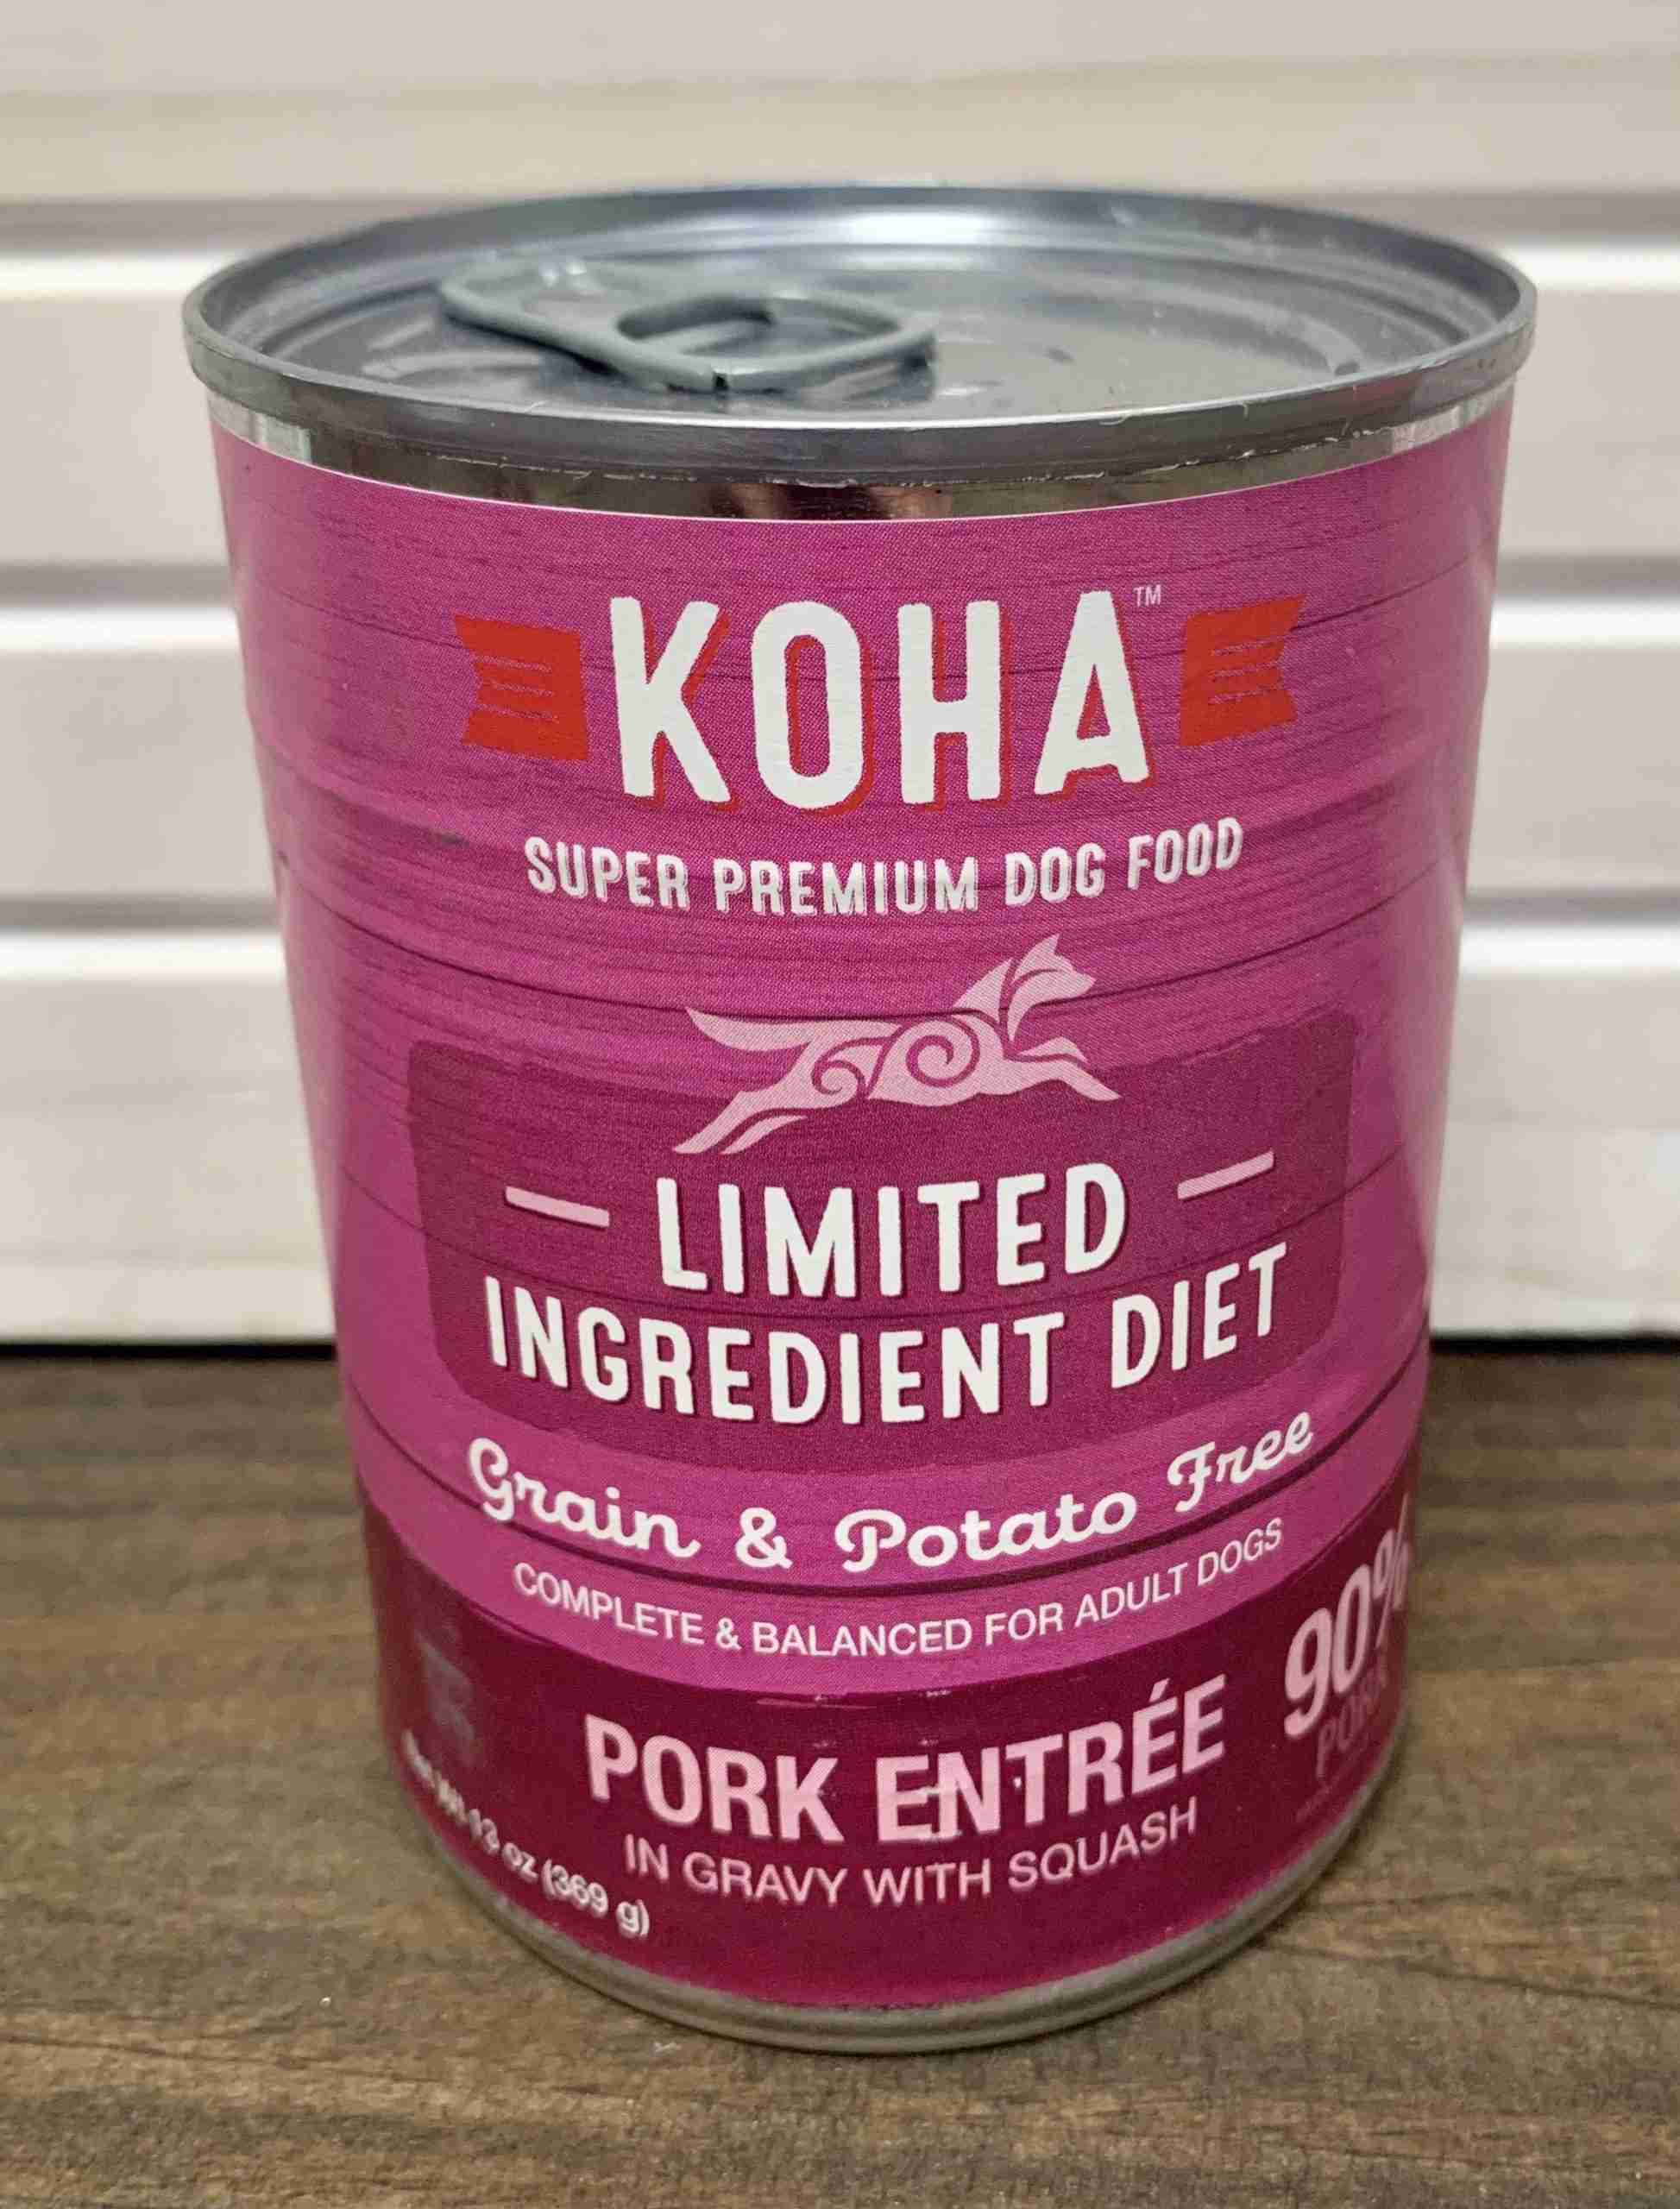 Koha Limited Ingredient Pork Entree for Dogs – One can